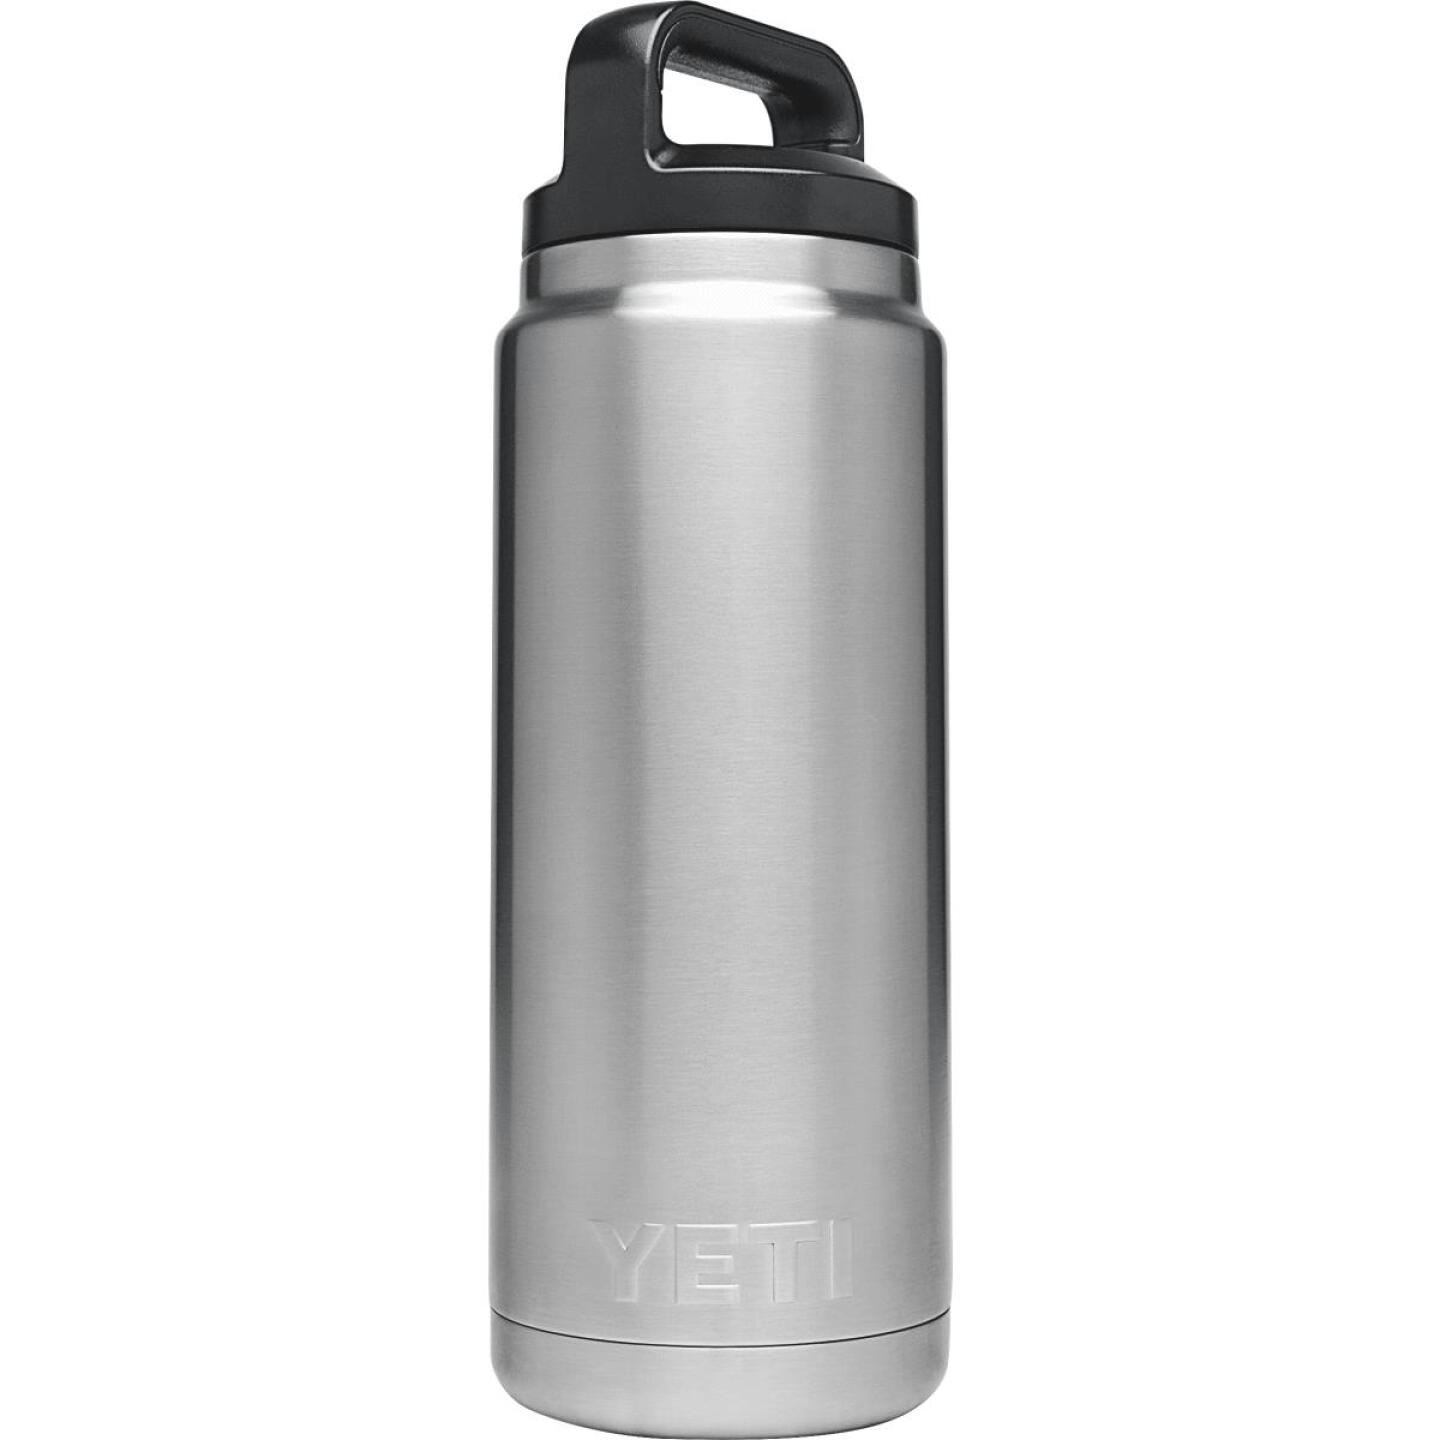 Yeti Rambler 26 Oz. Silver Stainless Steel Insulated Vacuum Bottle Image 1